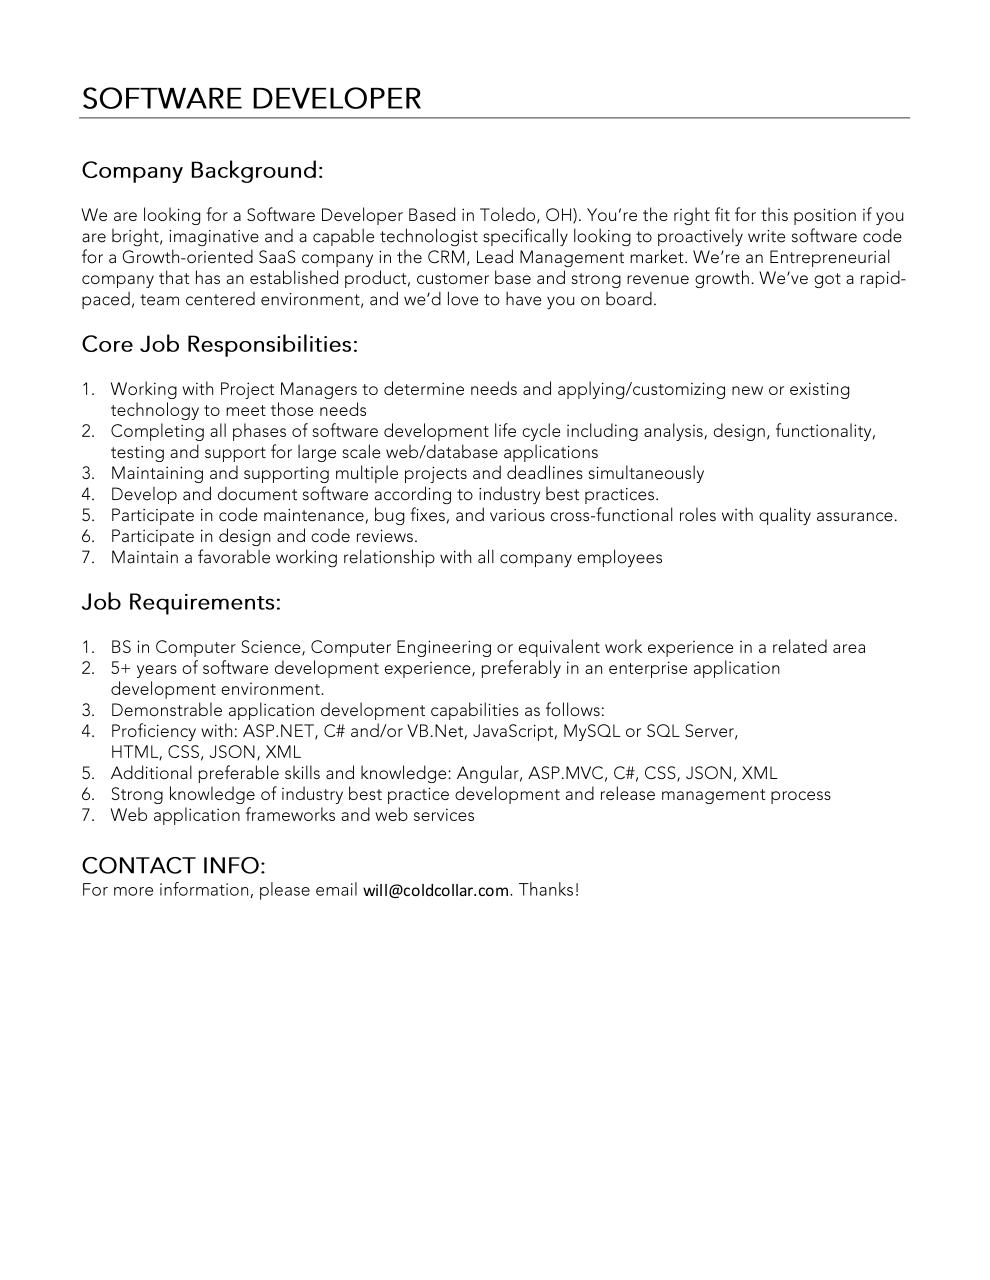 software developer job description example